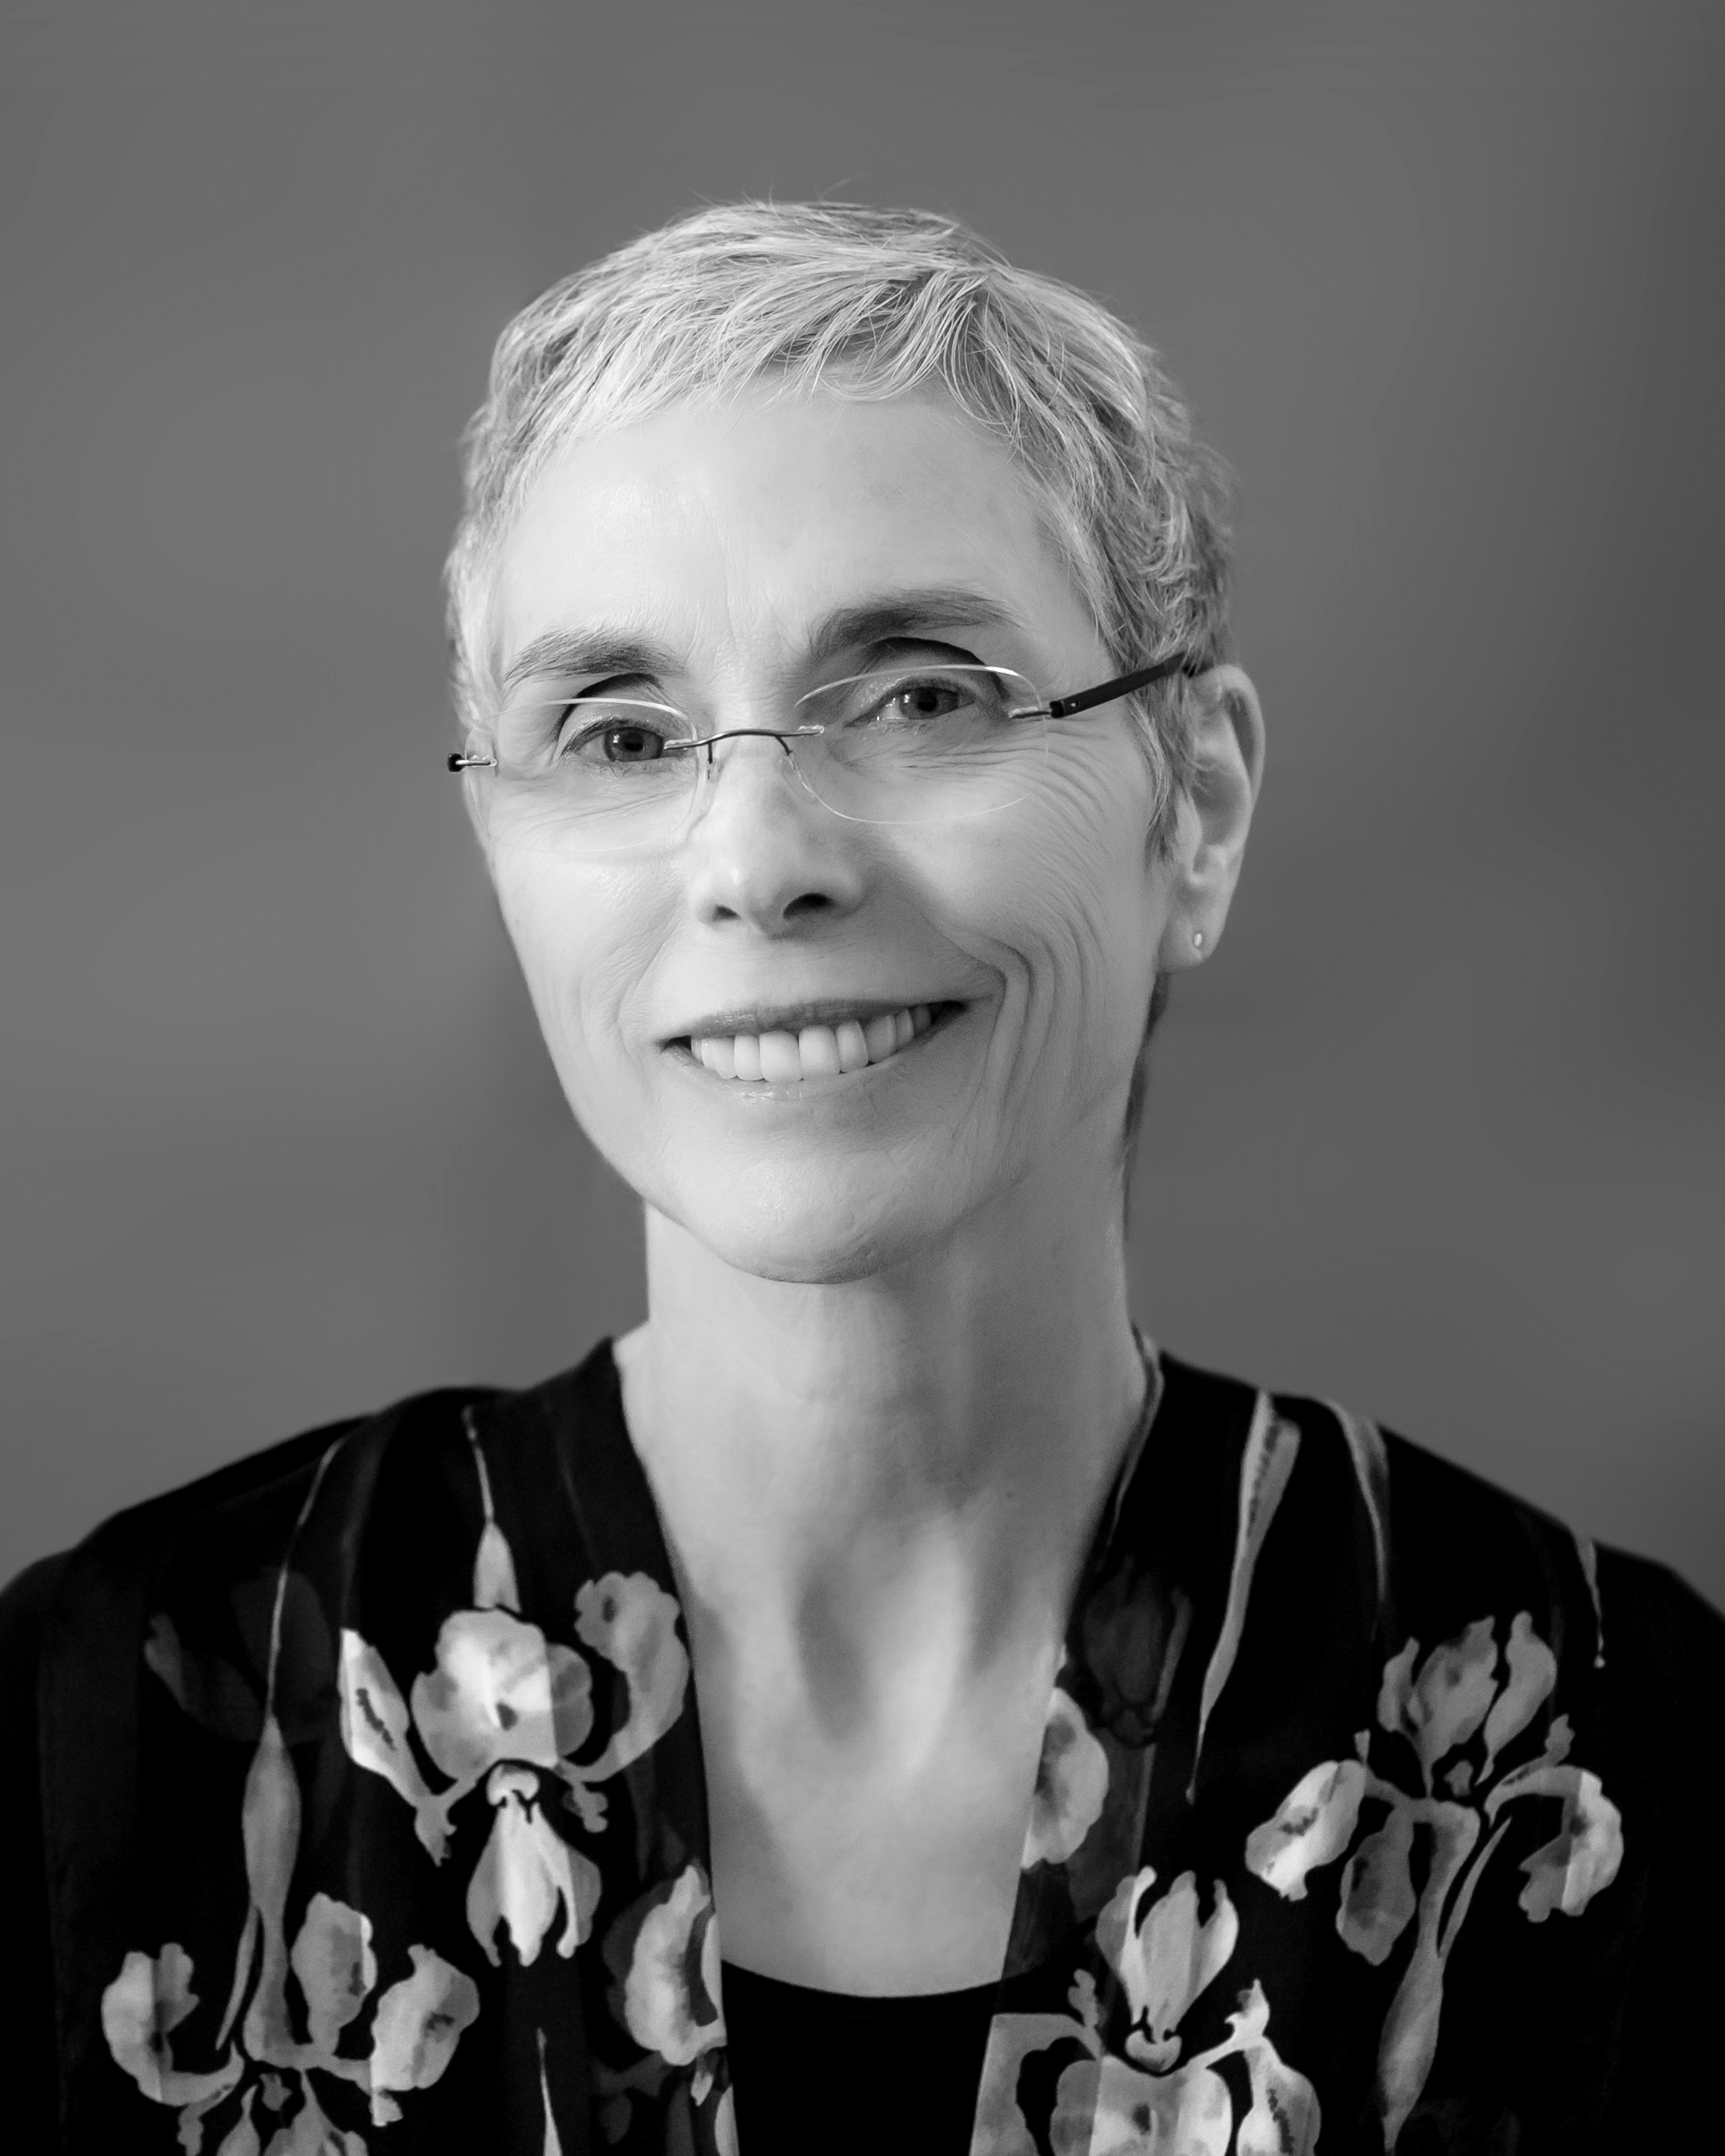 Headshot of Patricia McKernon Runkle, the author of Grief's Compass